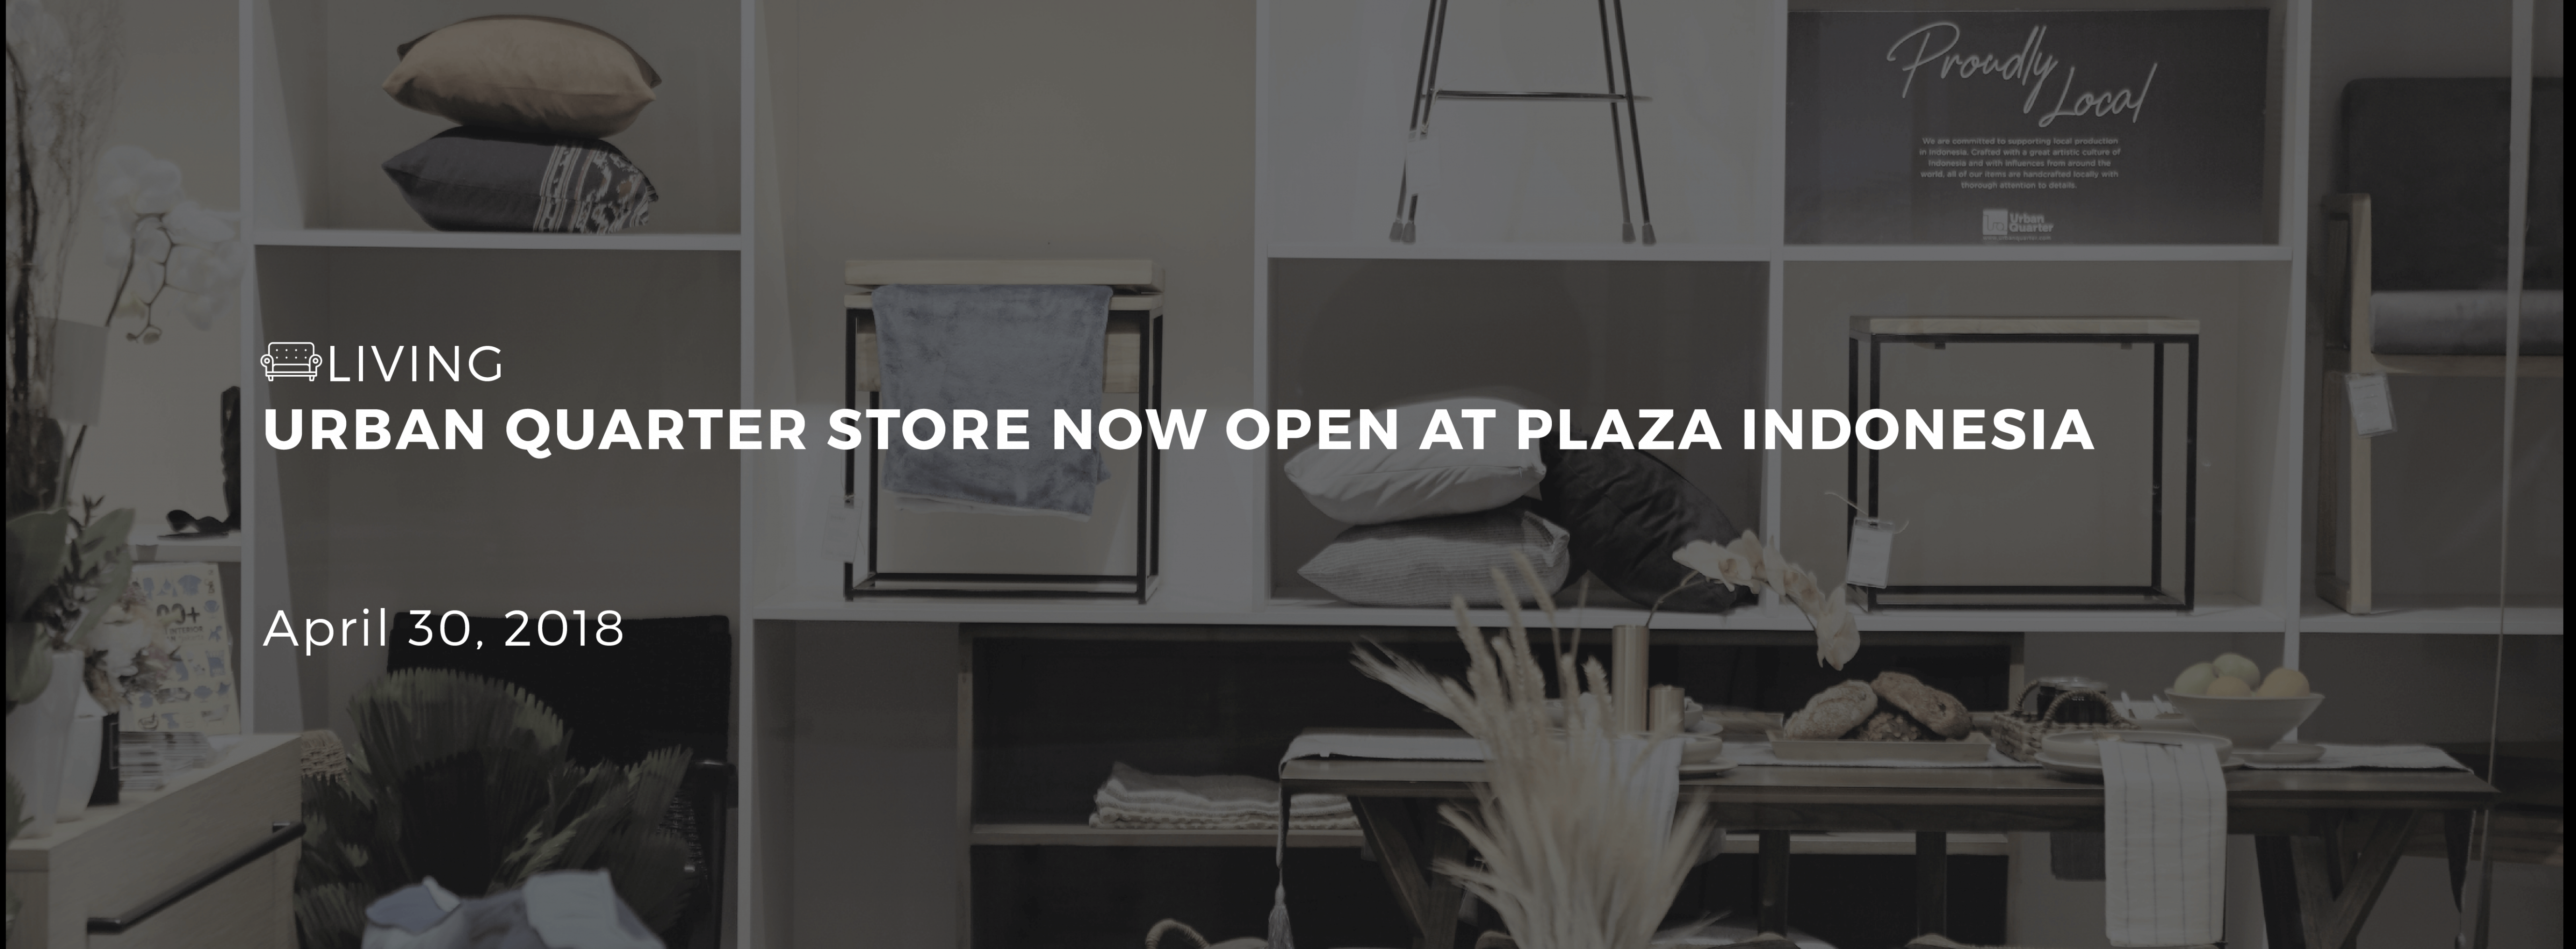 Urban Quarter Store now open at Plaza Indonesia | Urbanquarter